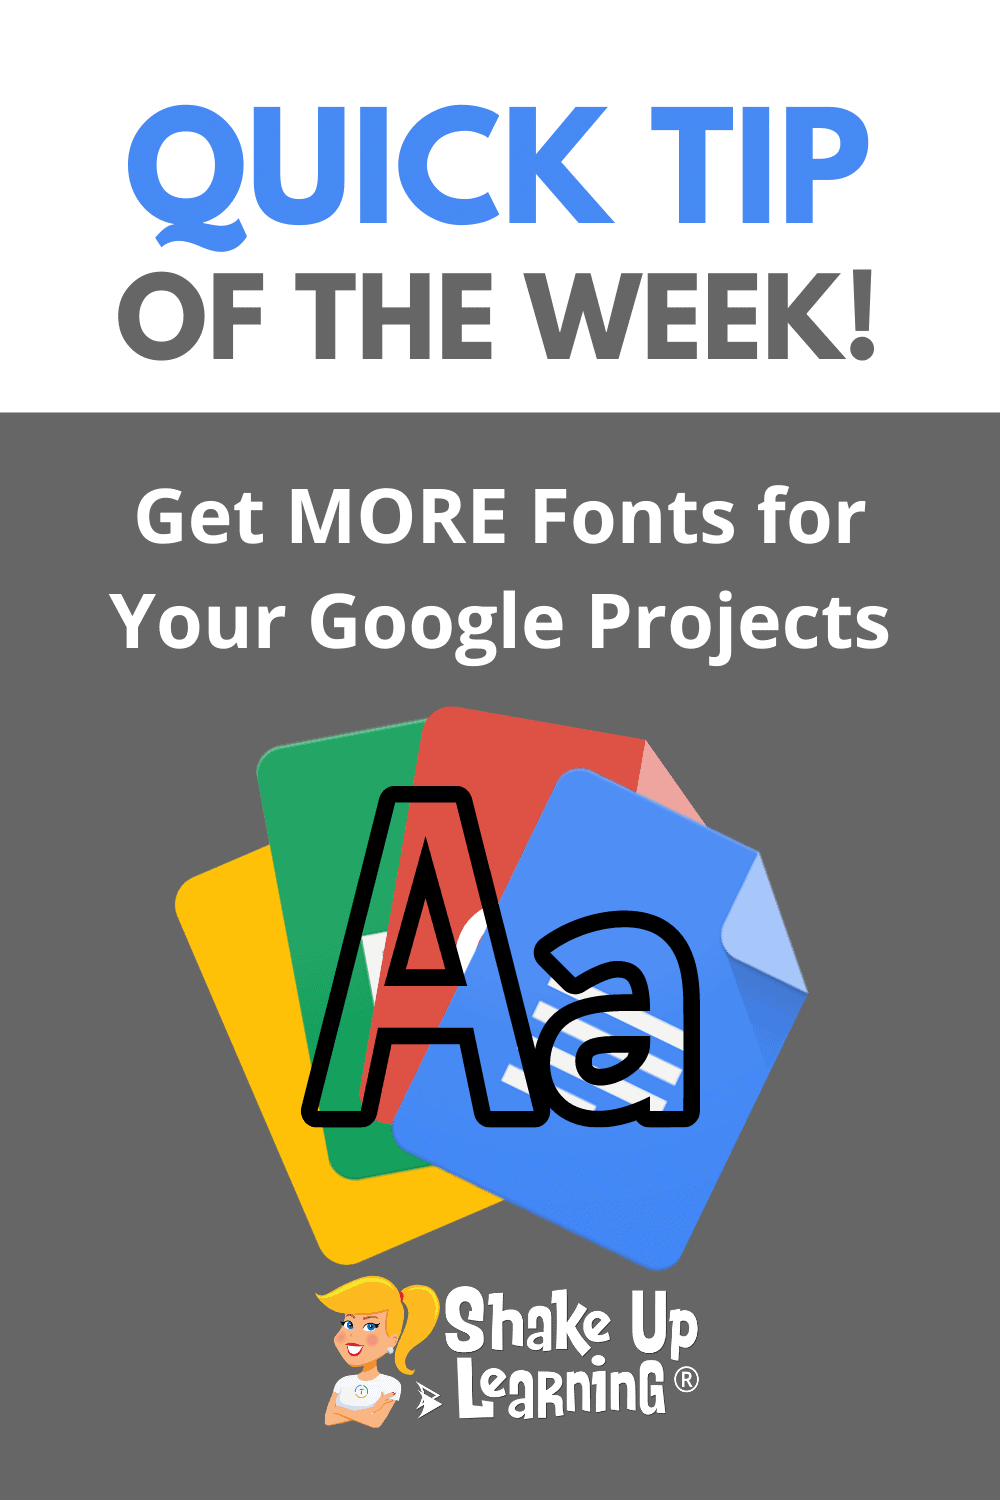 Get MORE Fonts for Your Google Projects! (Docs, Slides, Sheets, Drawings)